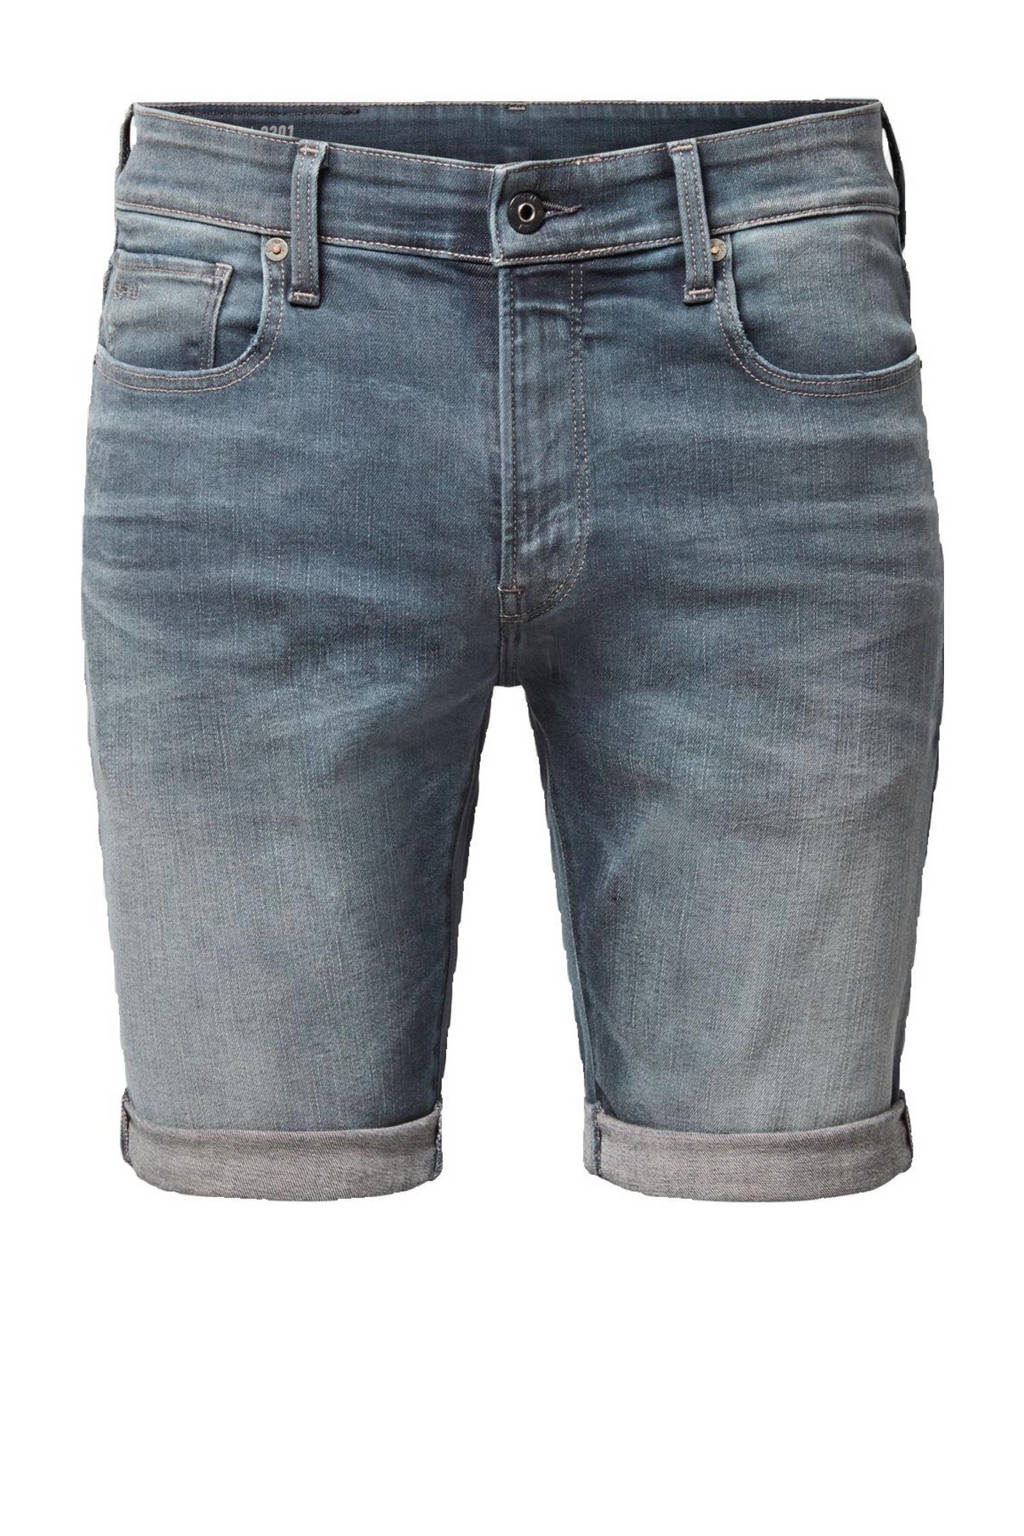 G-Star RAW 3301 slim fit jeans short worn in smokey night, Worn in smokey night